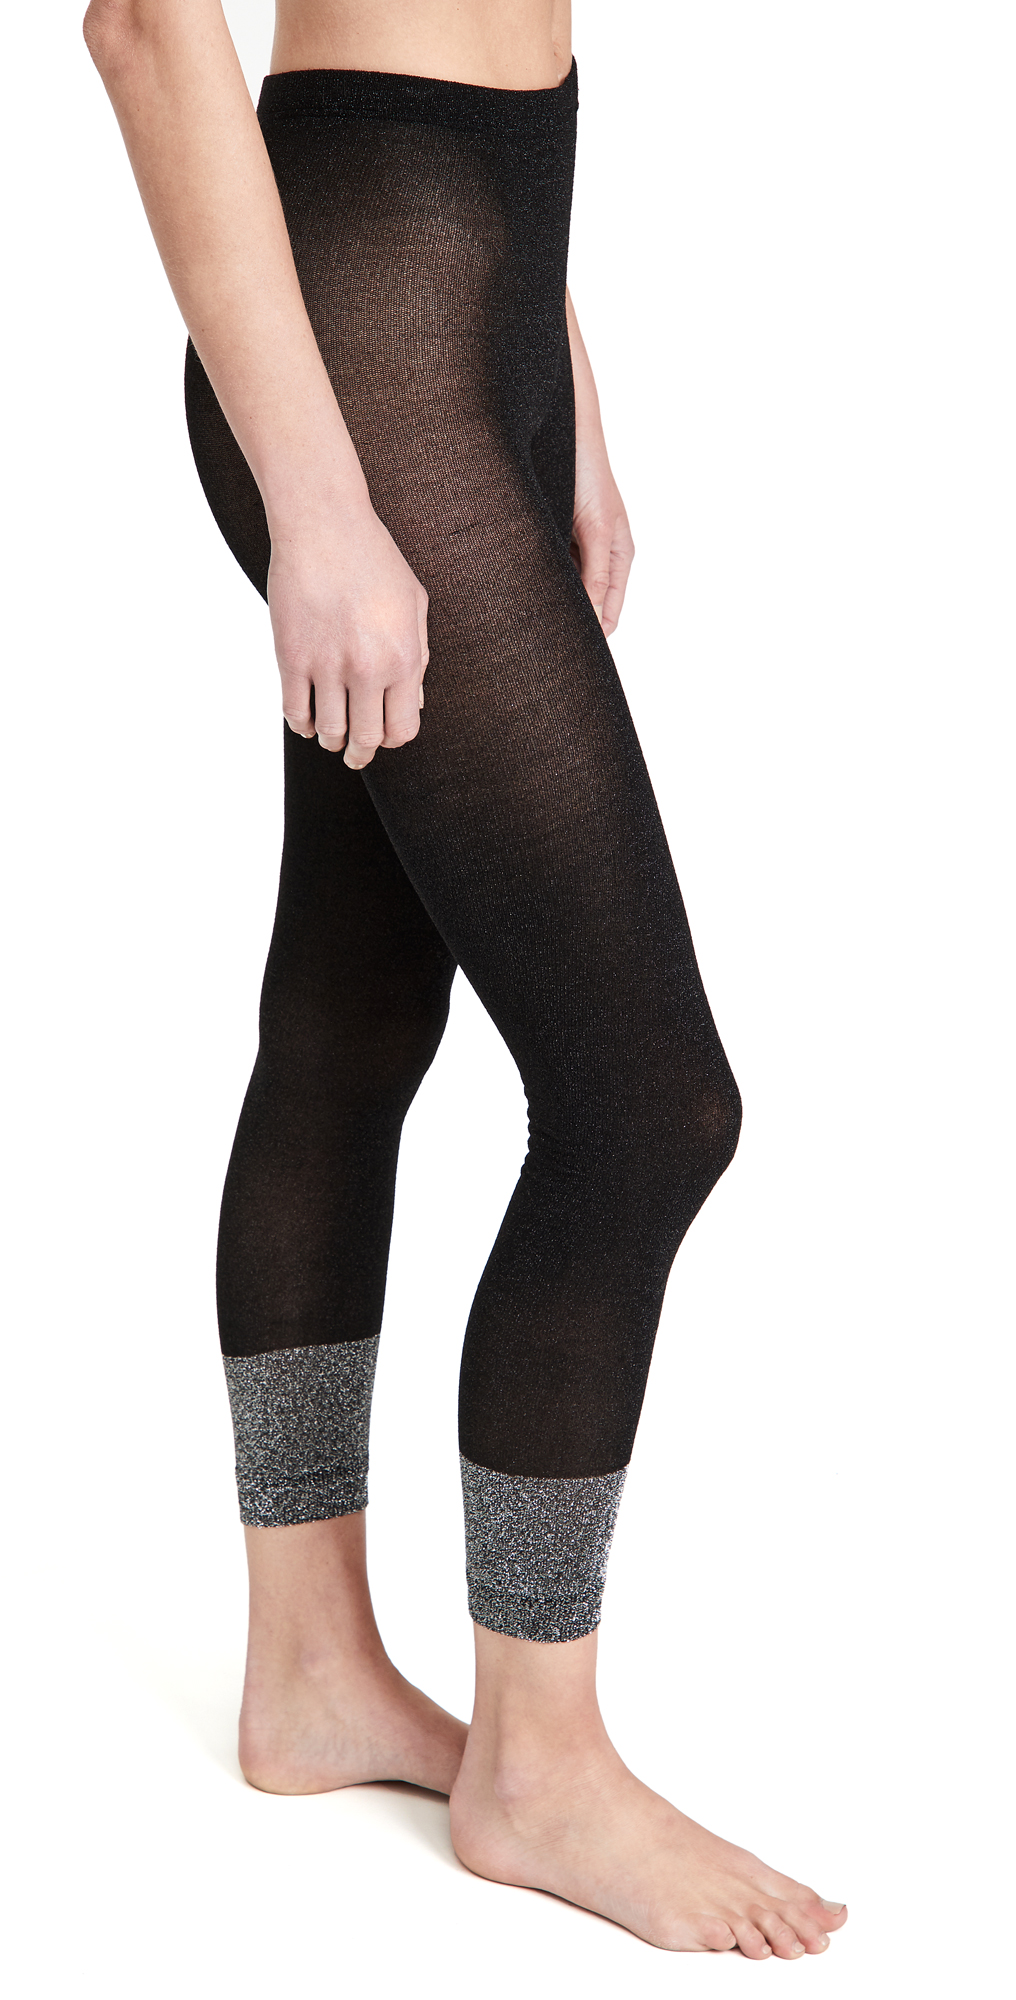 Isabel Marant Solania Tights